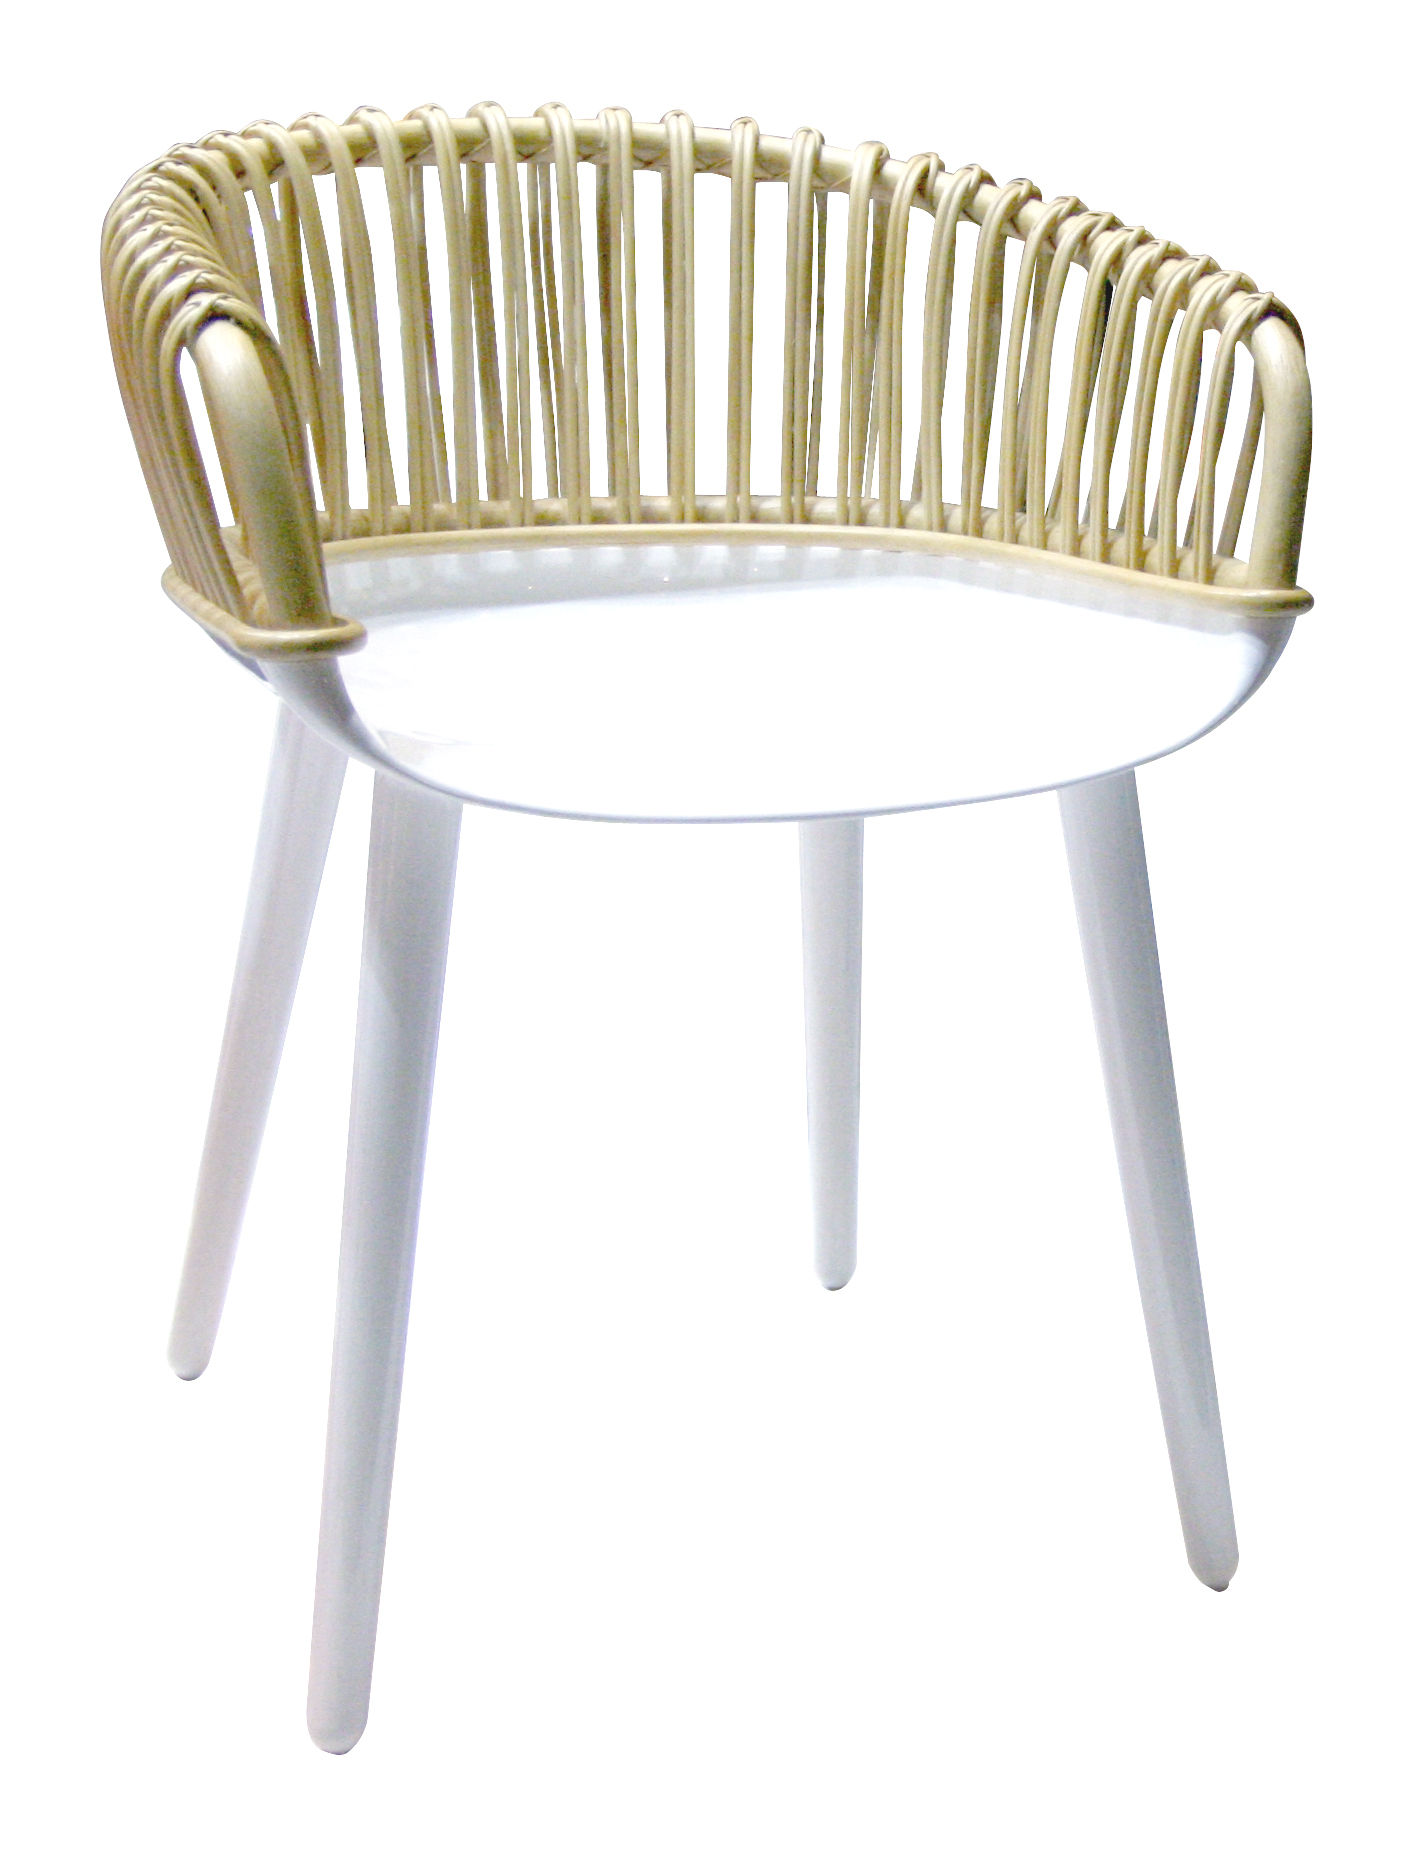 Furniture - Chairs - Cyborg Armchair - Polycarbonate & wicker backrest by Magis - Glossy white - Natural wicker back - Polycarbonate, Wicker